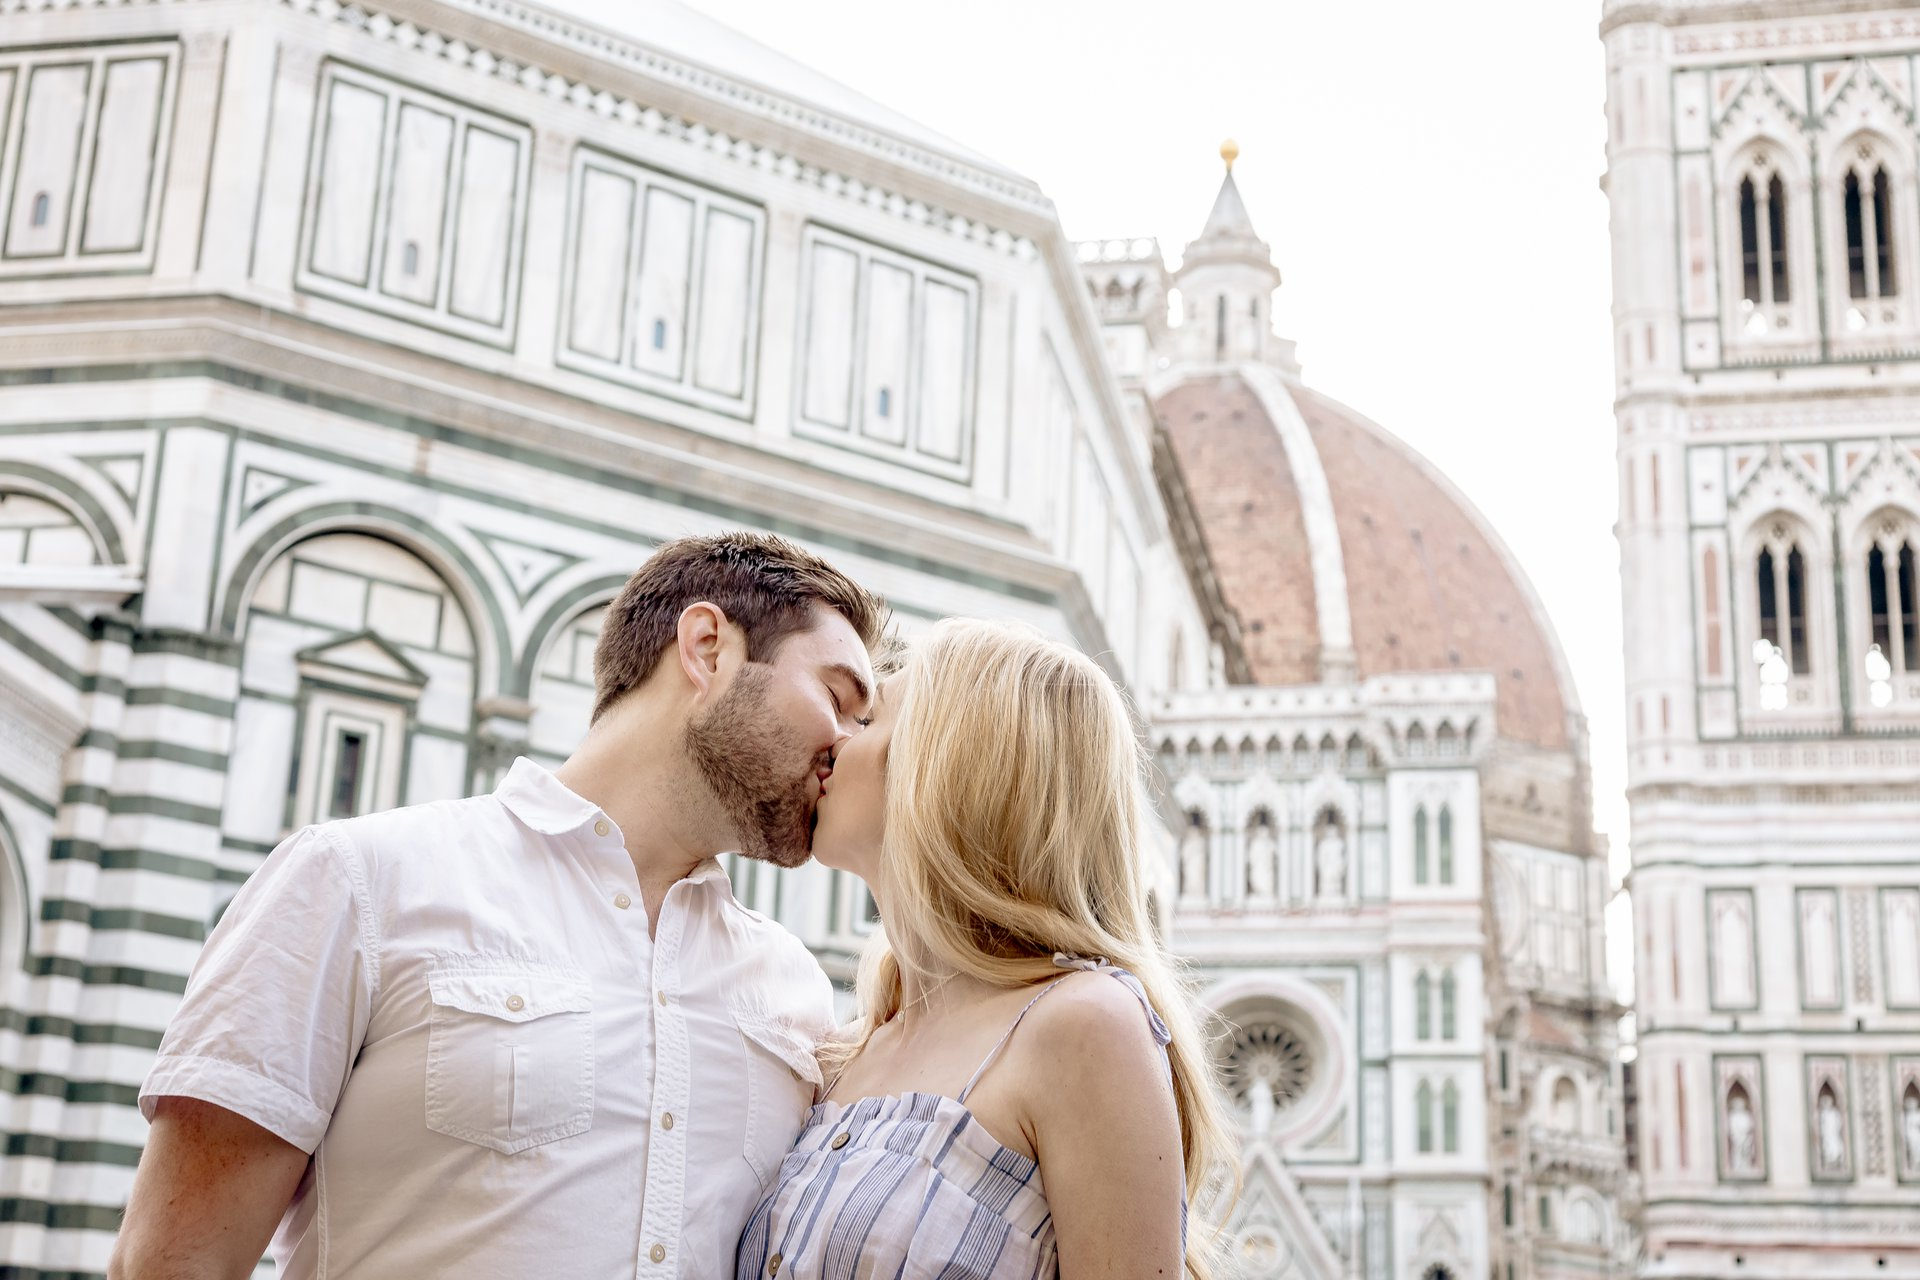 Florence-Italy-travel-story-Flytographer-16